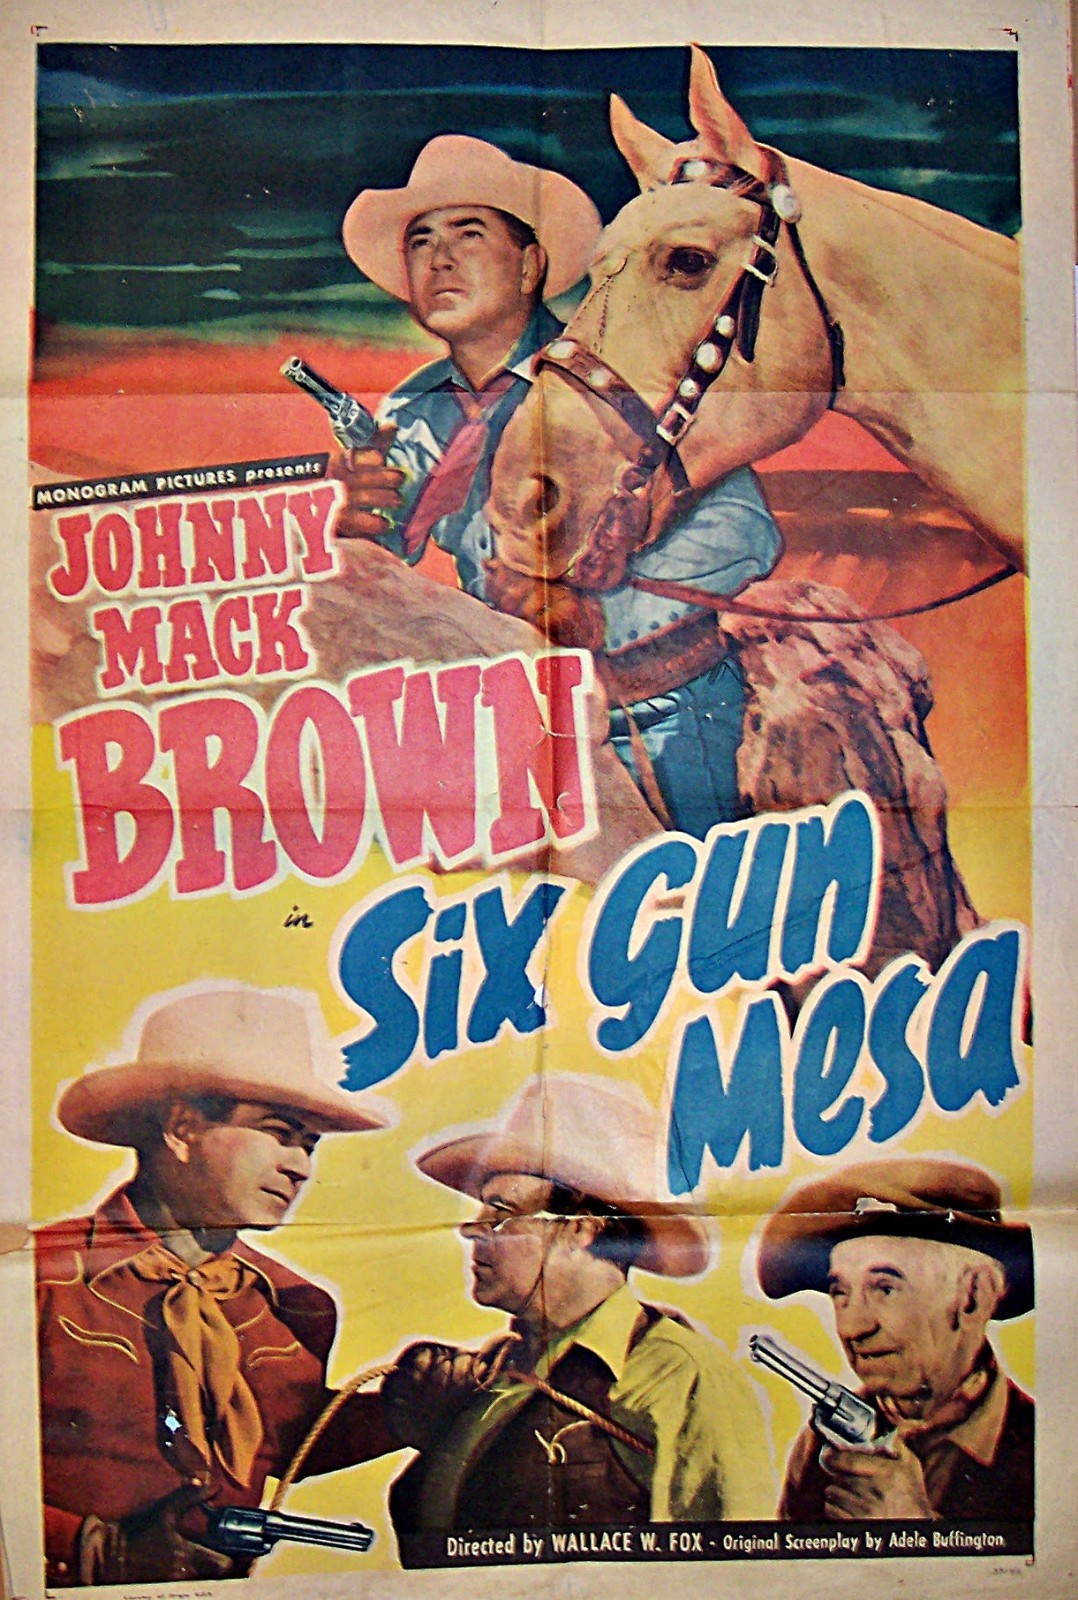 Pictured is a US one-sheet promotional poster for the 1949 Wallace Fox film Six Gun Mesa starring Johnny Mack Brown.